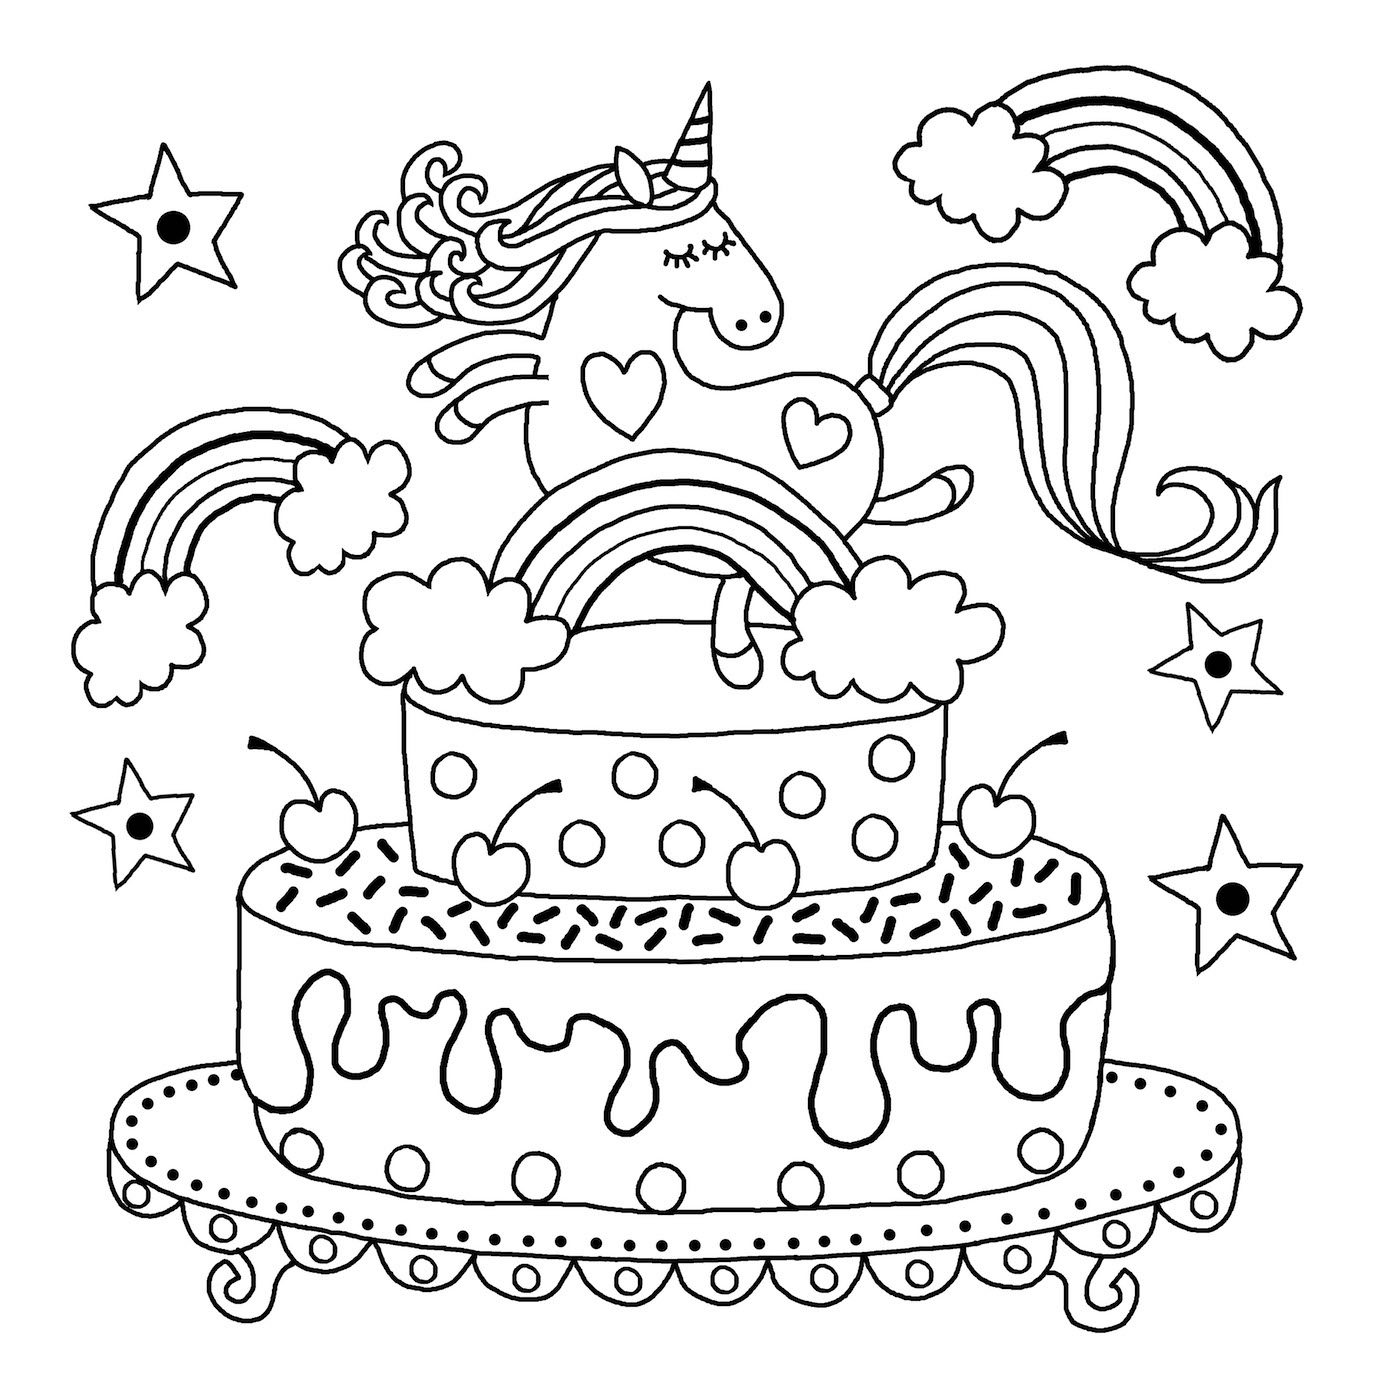 Downloadable Unicorn Colouring Page